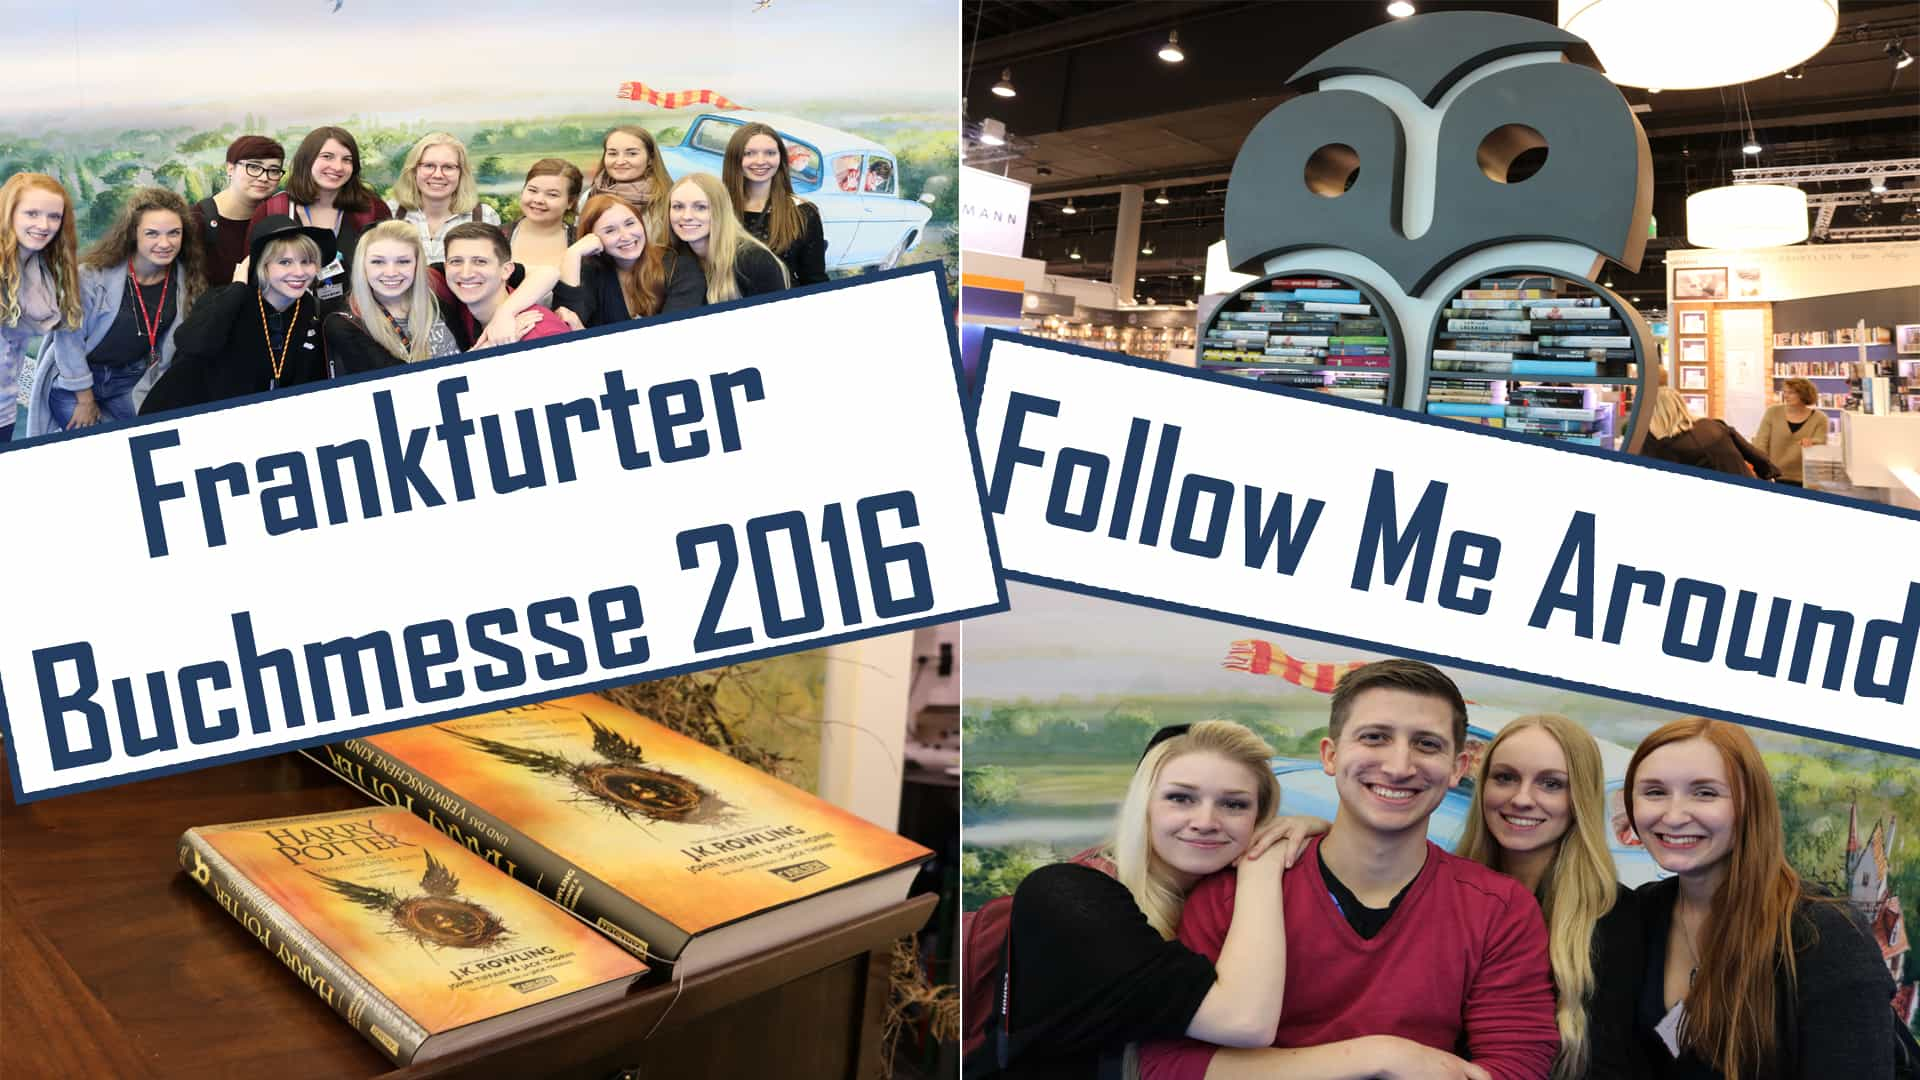 Frankfurter Buchmesse 2016 // Follow Me Around